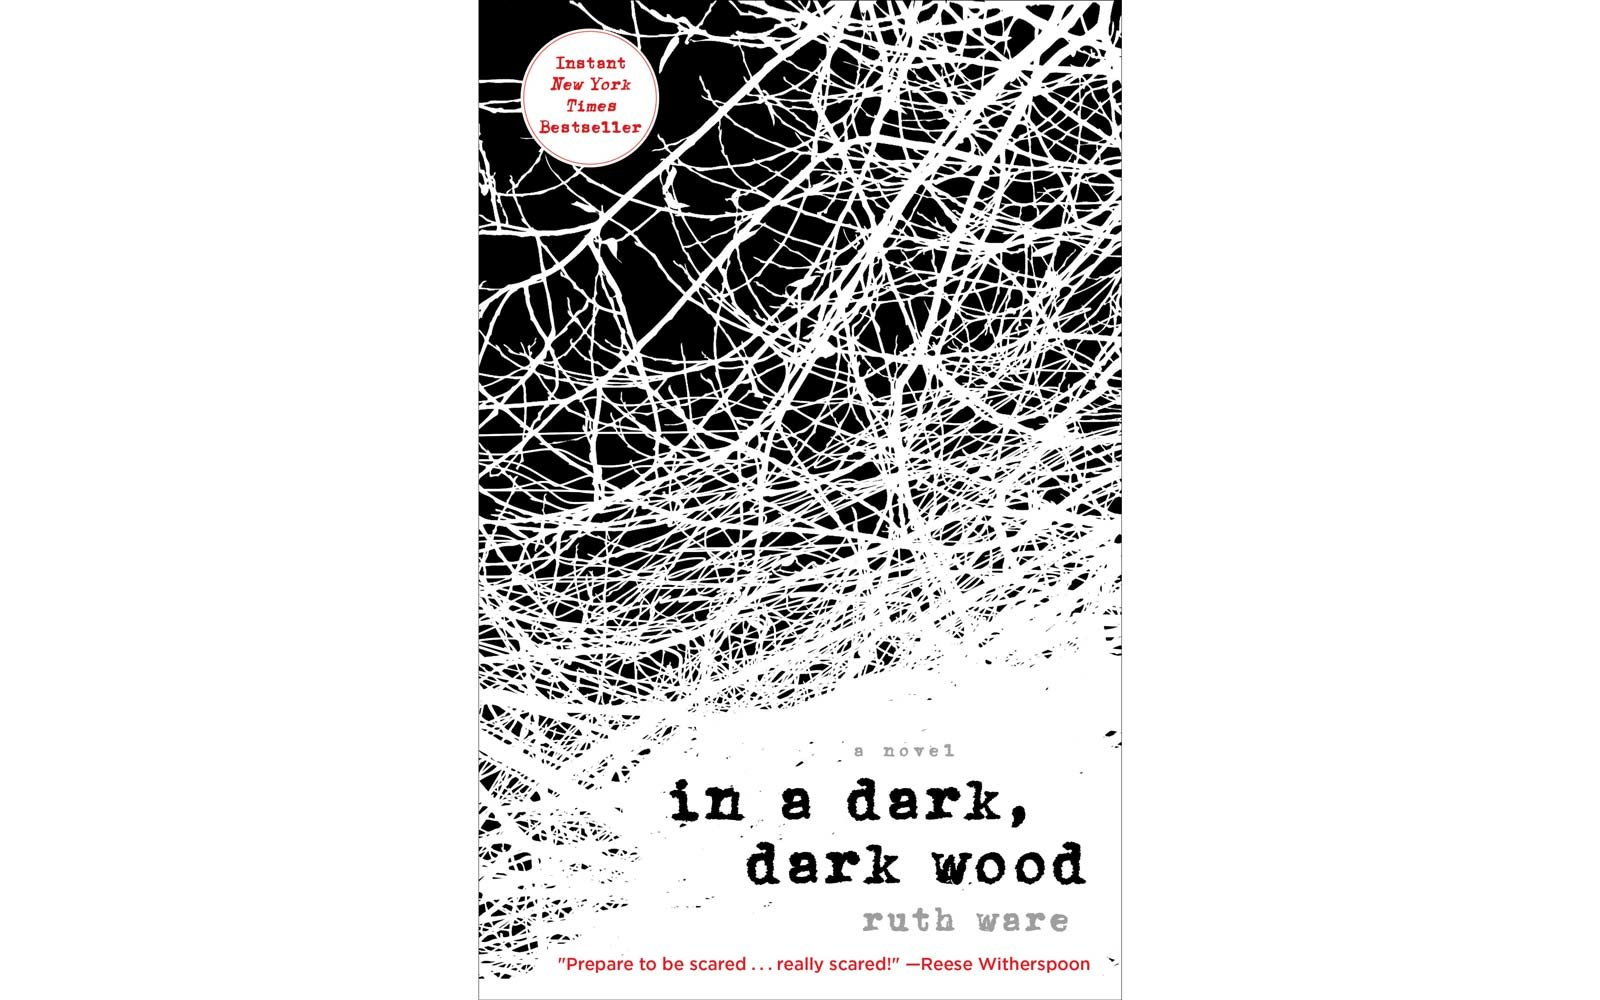 In a Dark, Dark, Wood